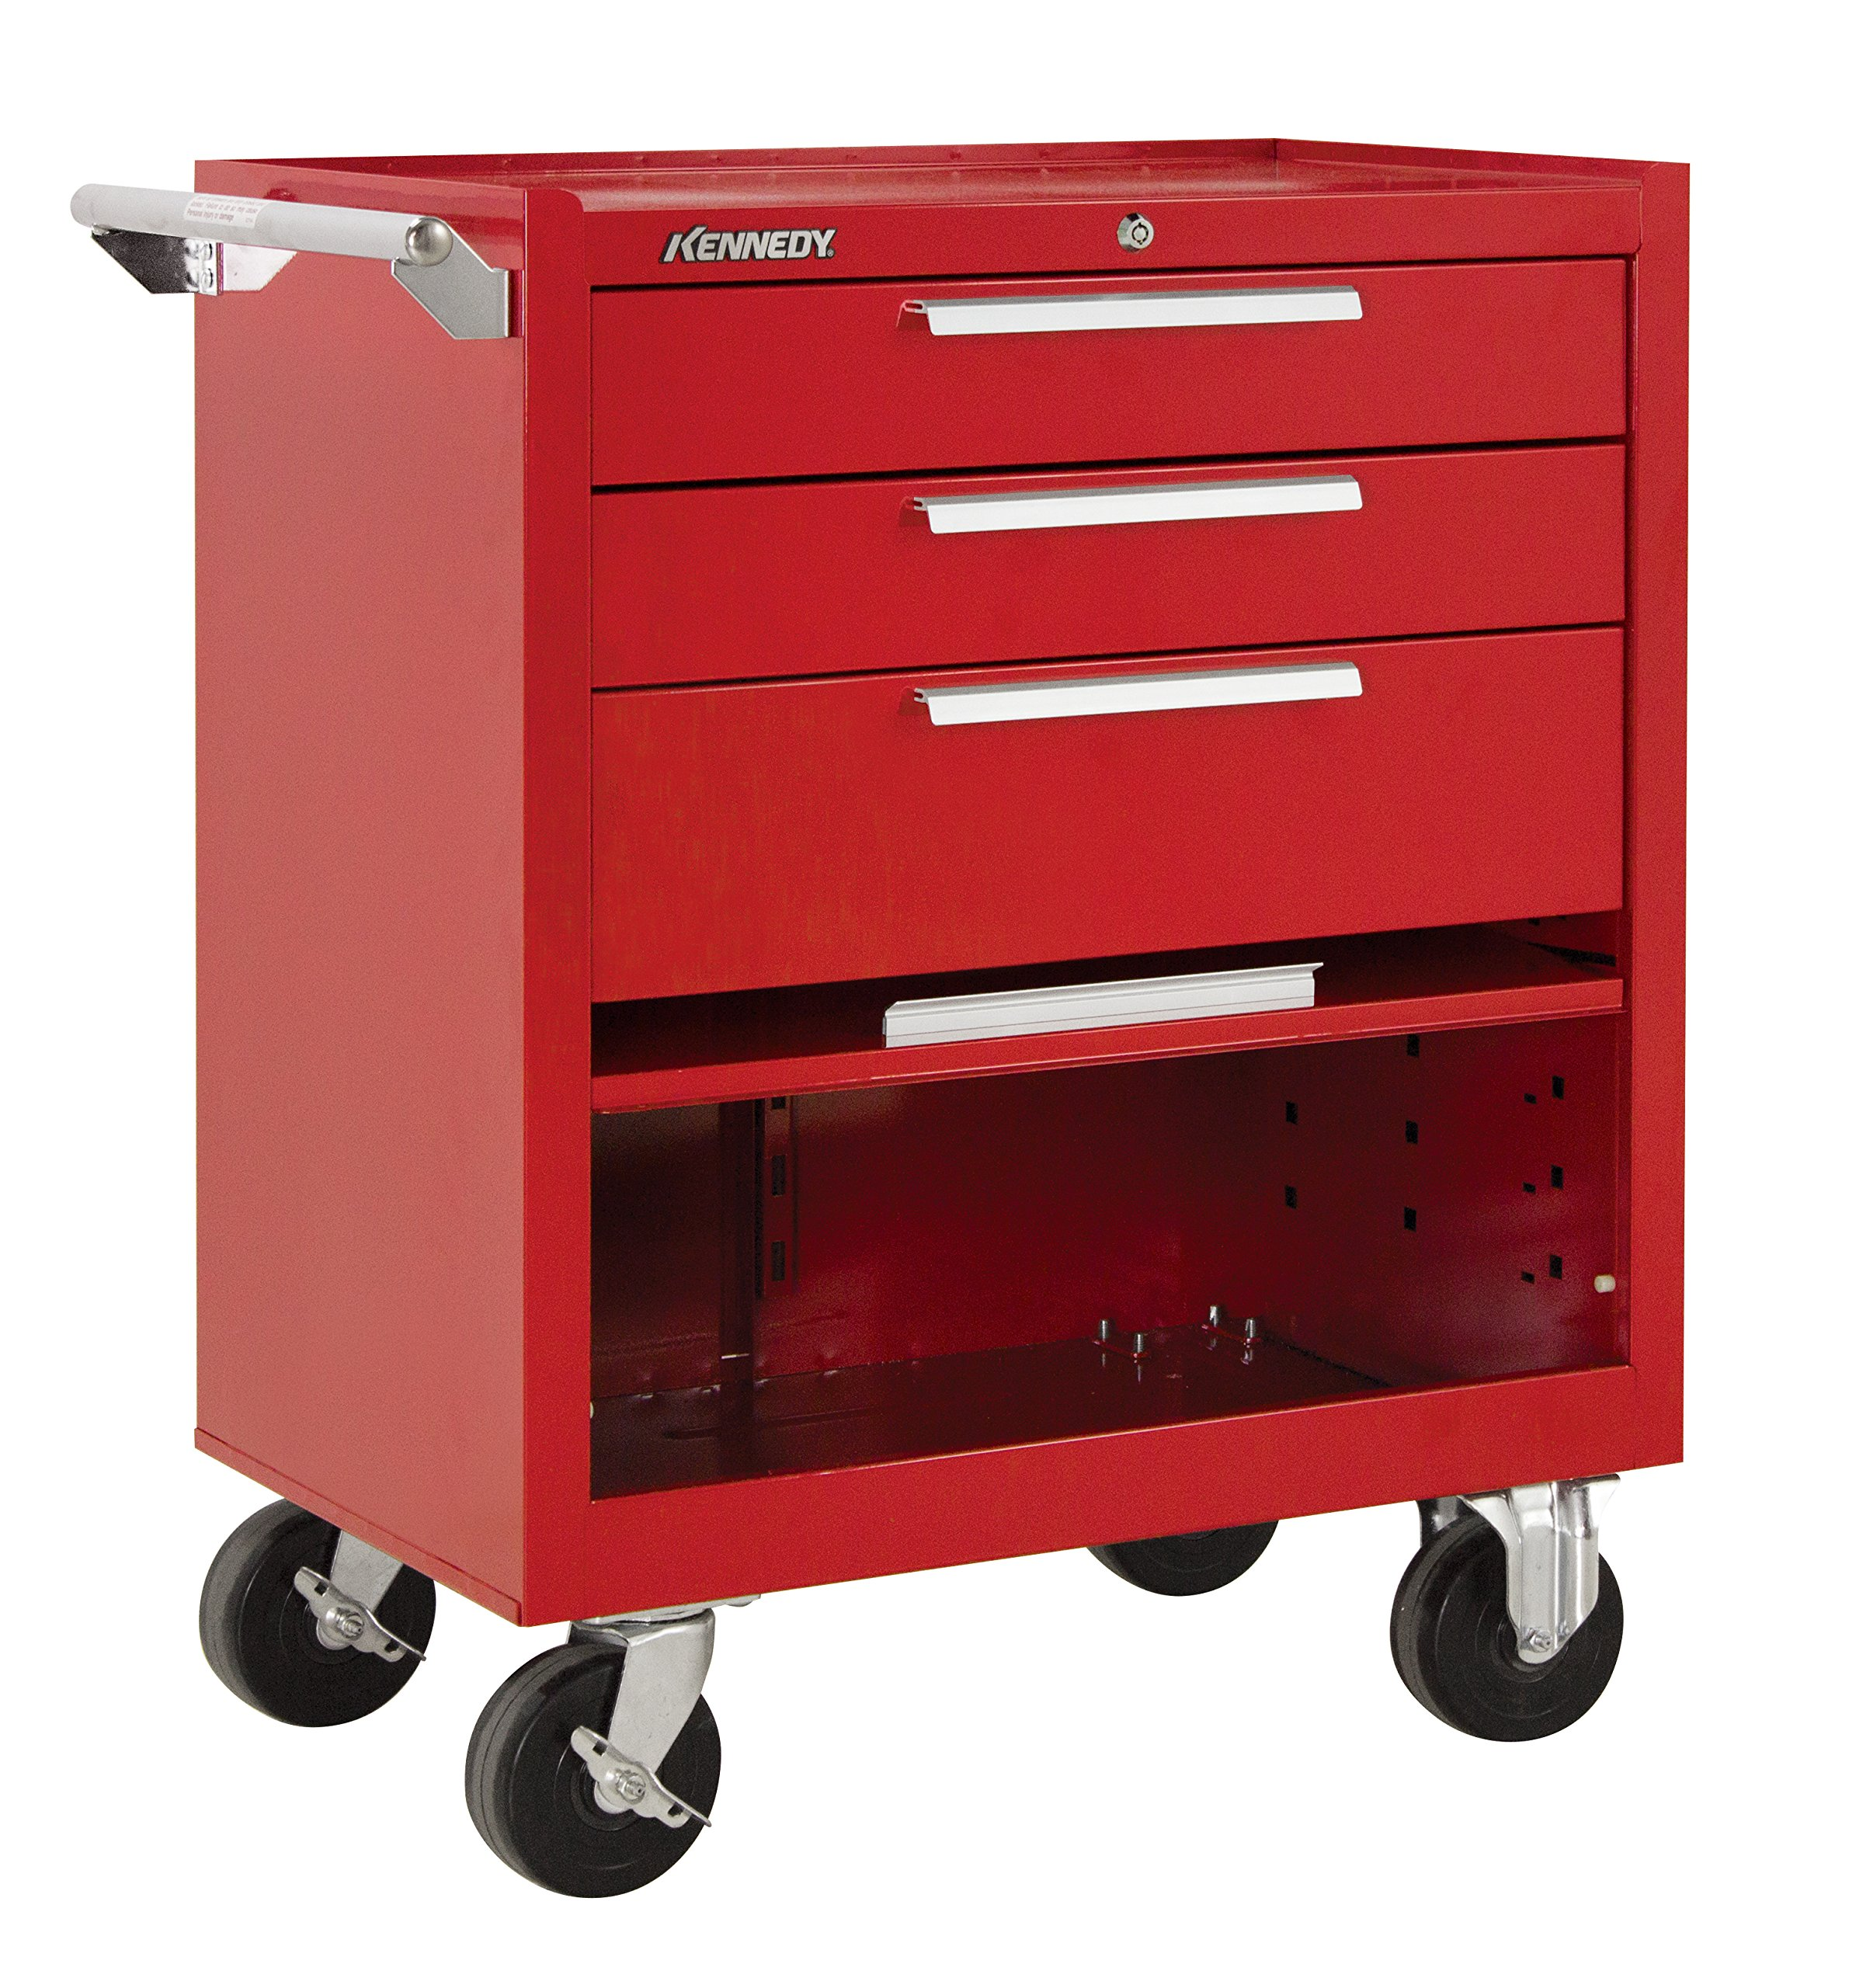 Kennedy Manufacturing 273R 27'' 3-Drawer Industrial Tool Storage Roller Cabinet With Chest And Wheels, Industrial Red